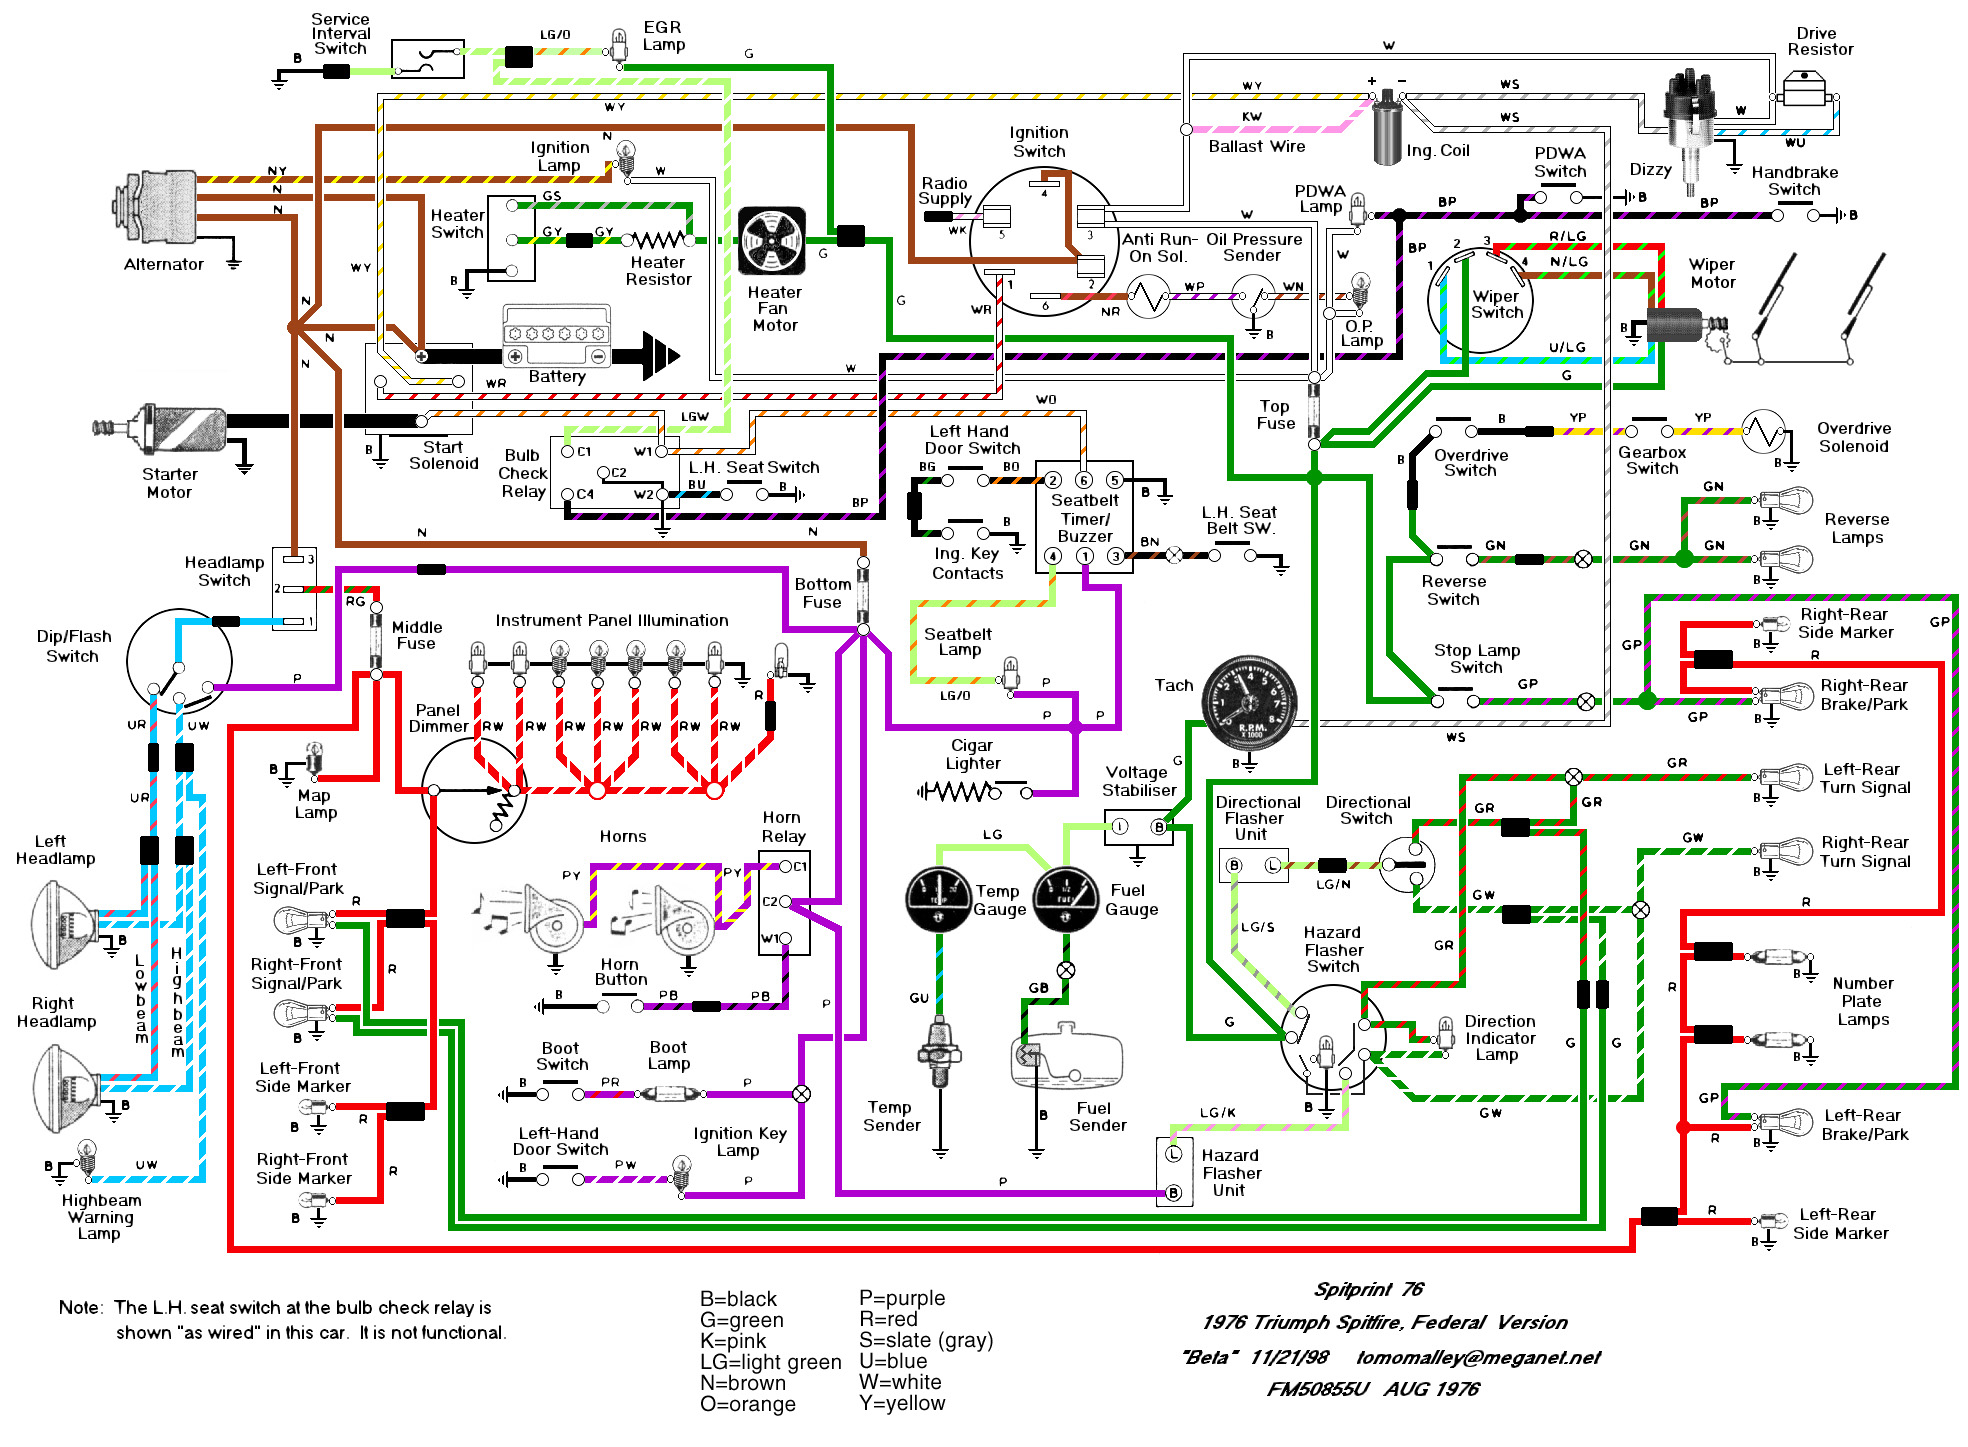 76diagram hd wiring diagram beats solo hd wiring diagram \u2022 wiring diagrams how to read wiring diagrams for cars at reclaimingppi.co